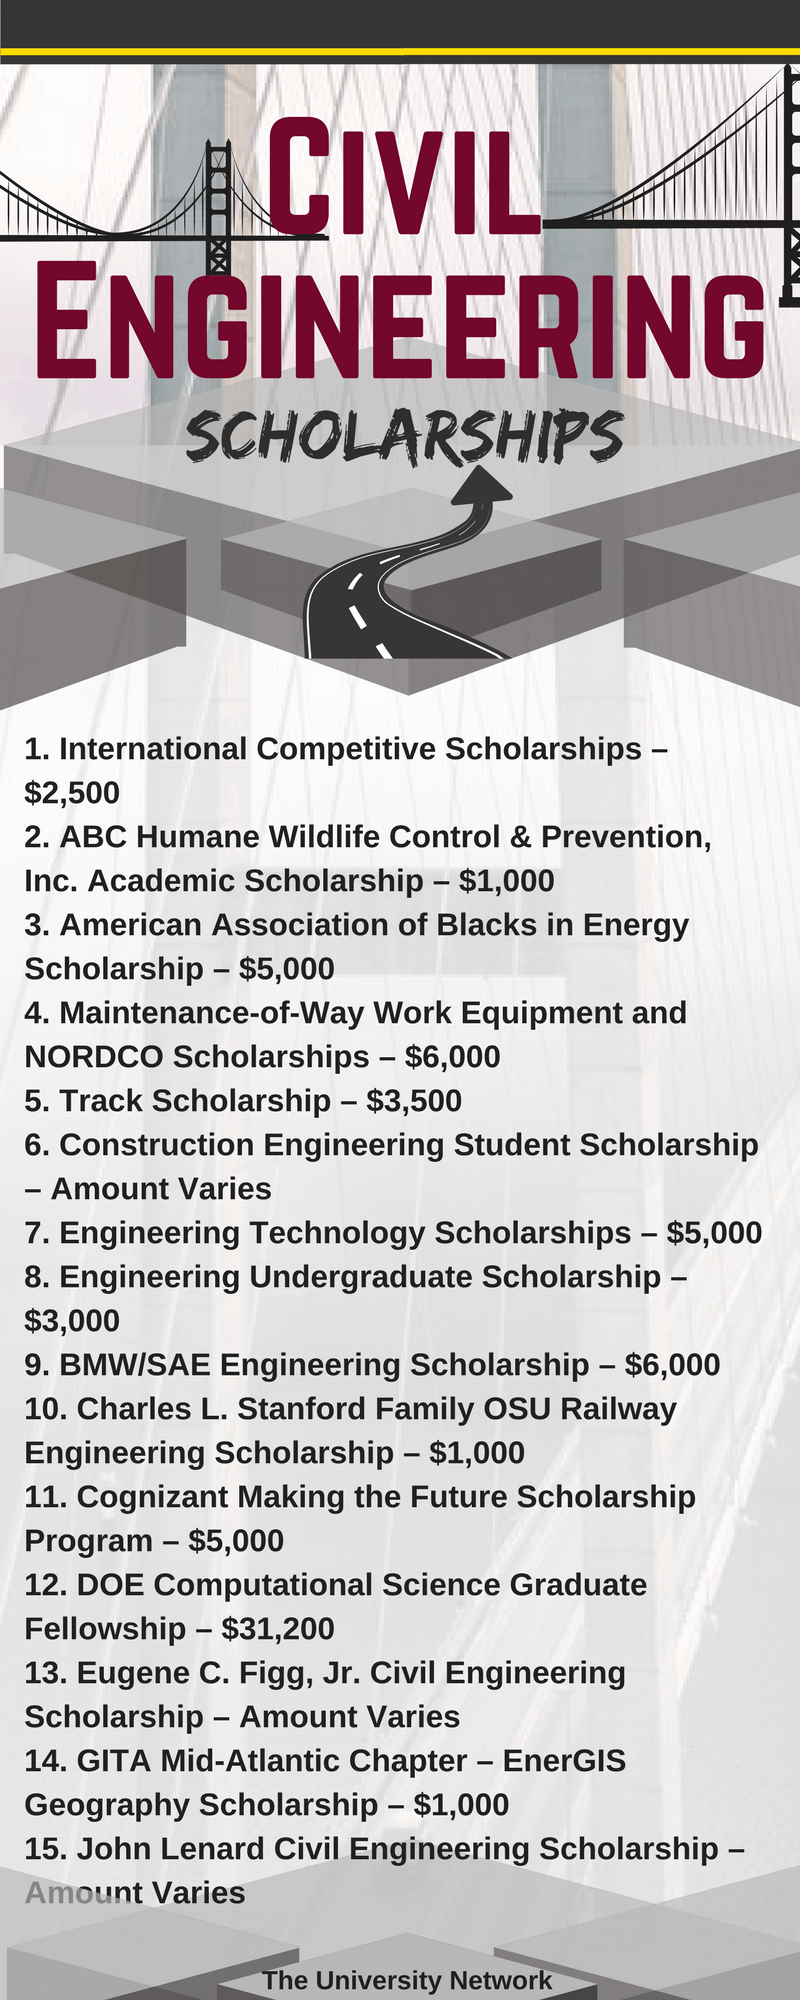 Civil Engineering Scholarships The University Network Scholarships For College Scholarships Engineering Student College